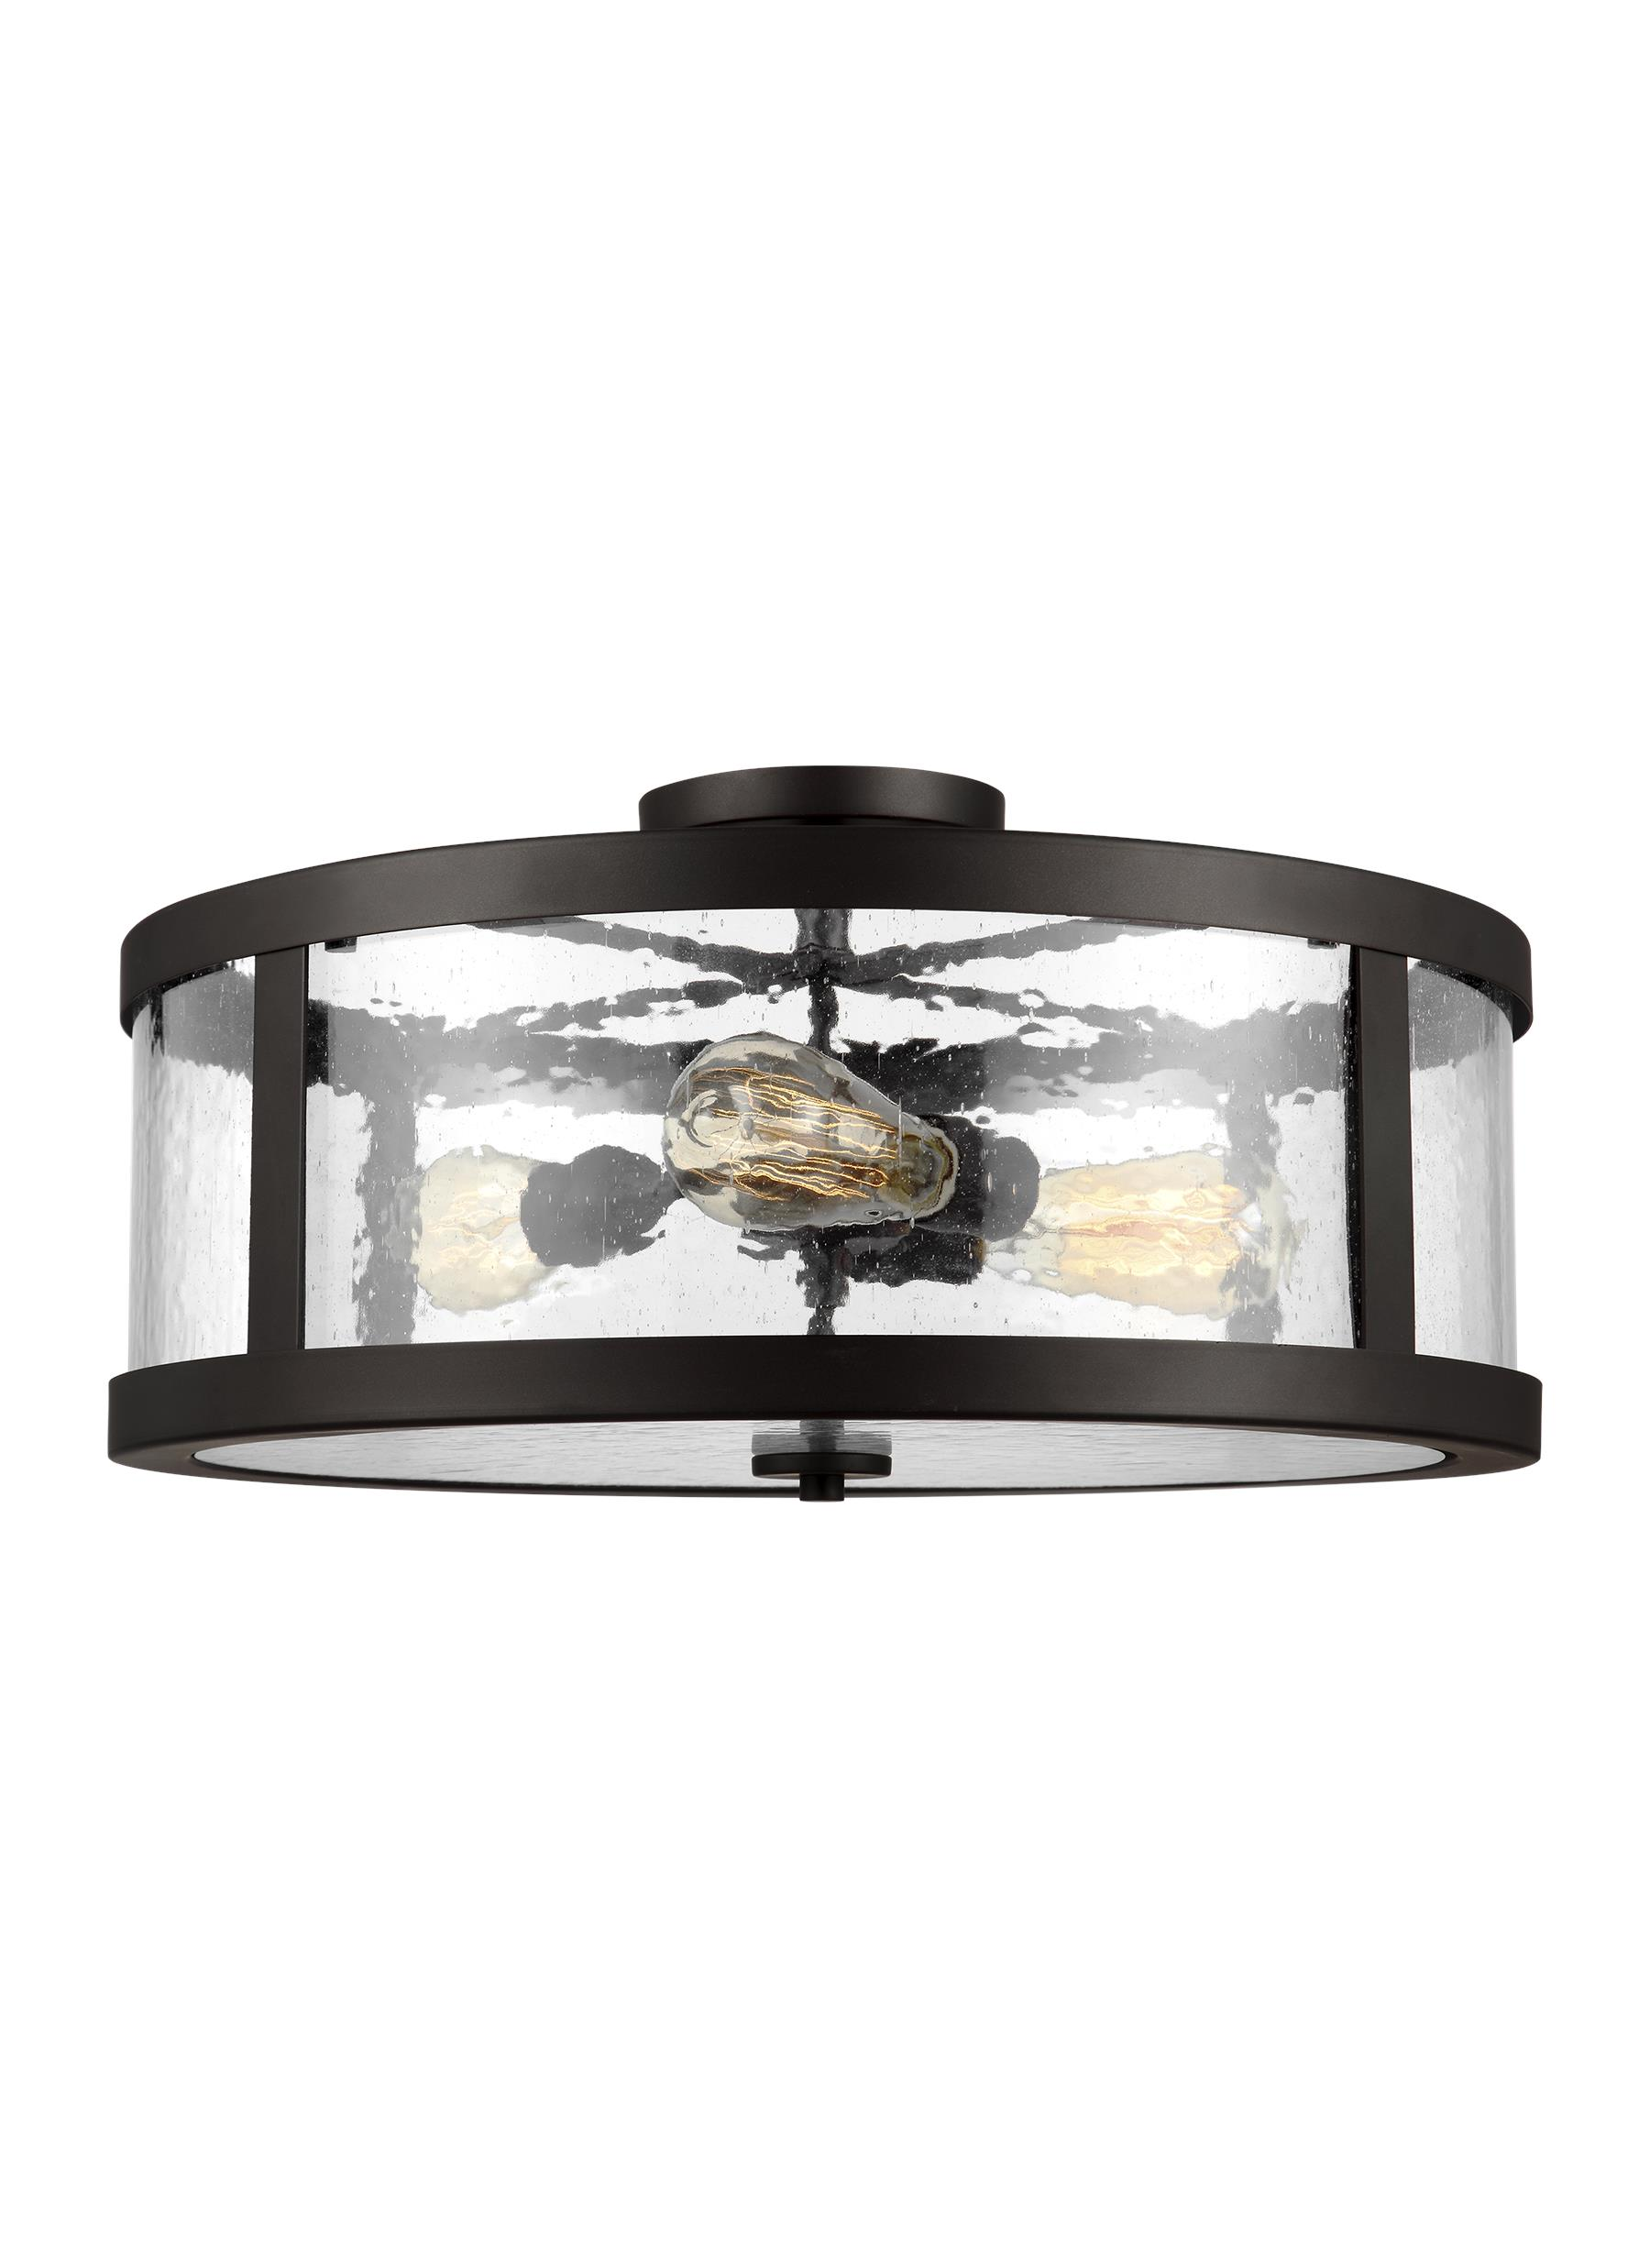 master germany mount behhrens fixture sale behrens at lights lighting furniture flush peter ceilings circa f light siemens ceiling for id